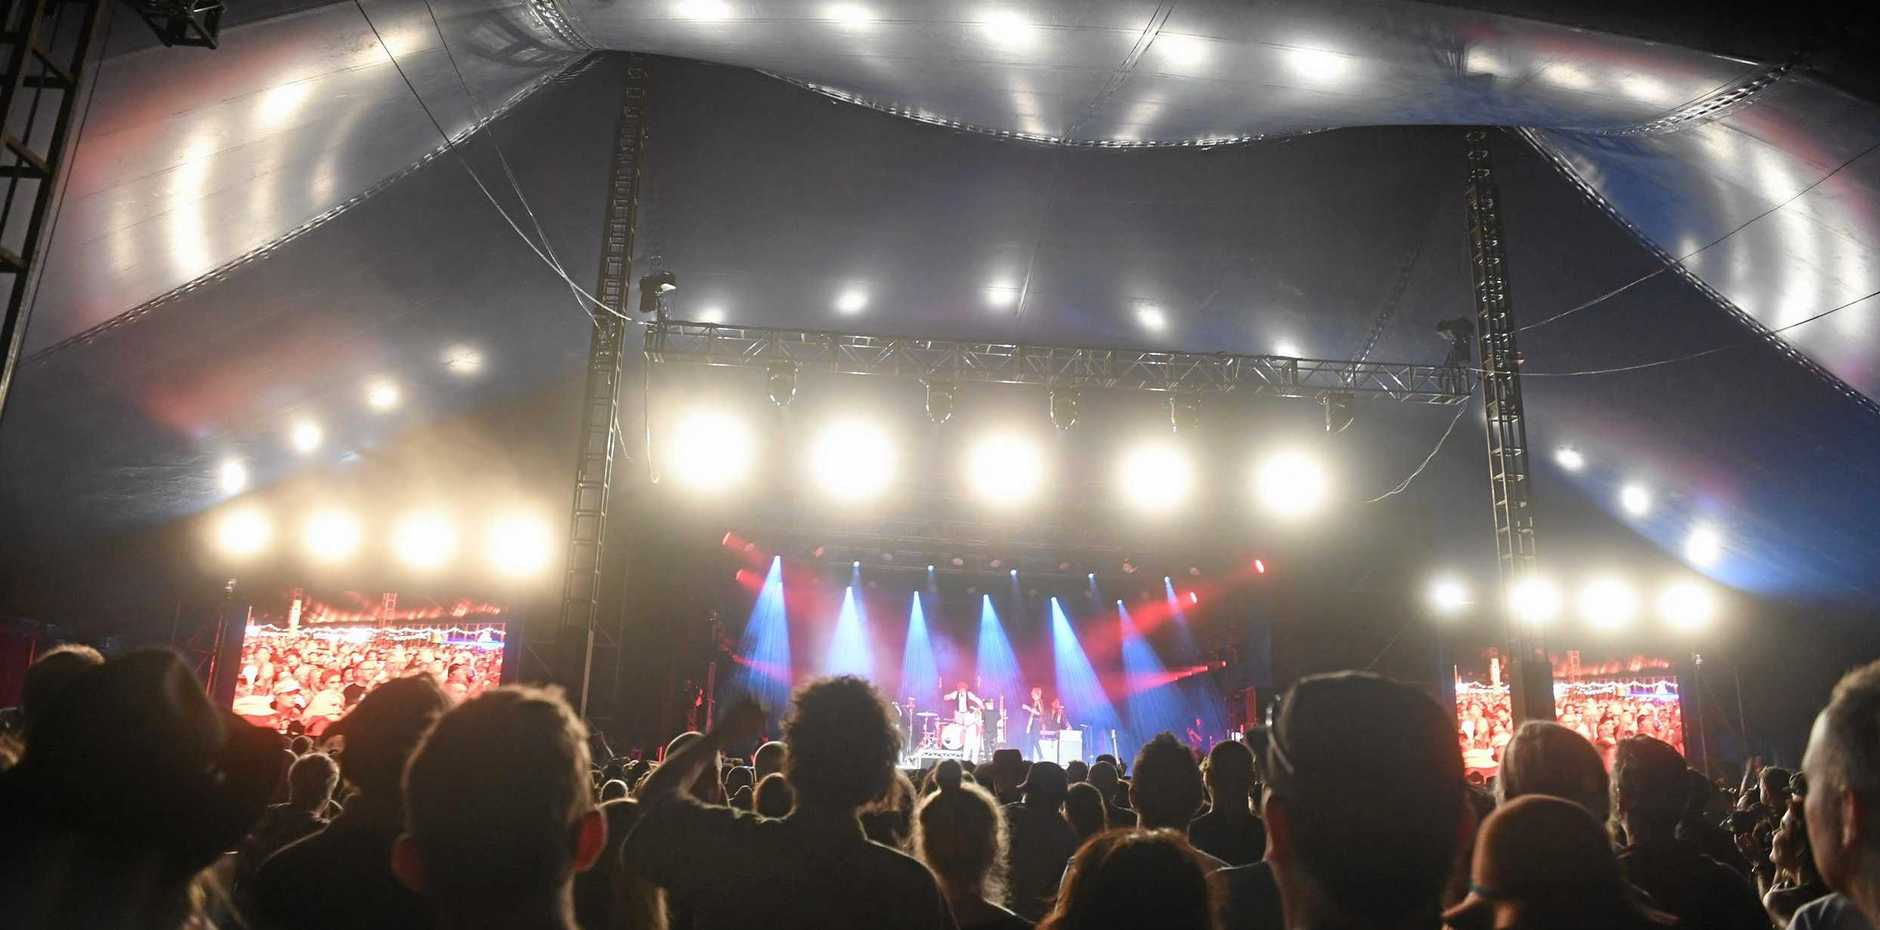 EVENT: One of the stages at the Byron Bay Bluesfest 2019 in Tyagarah.